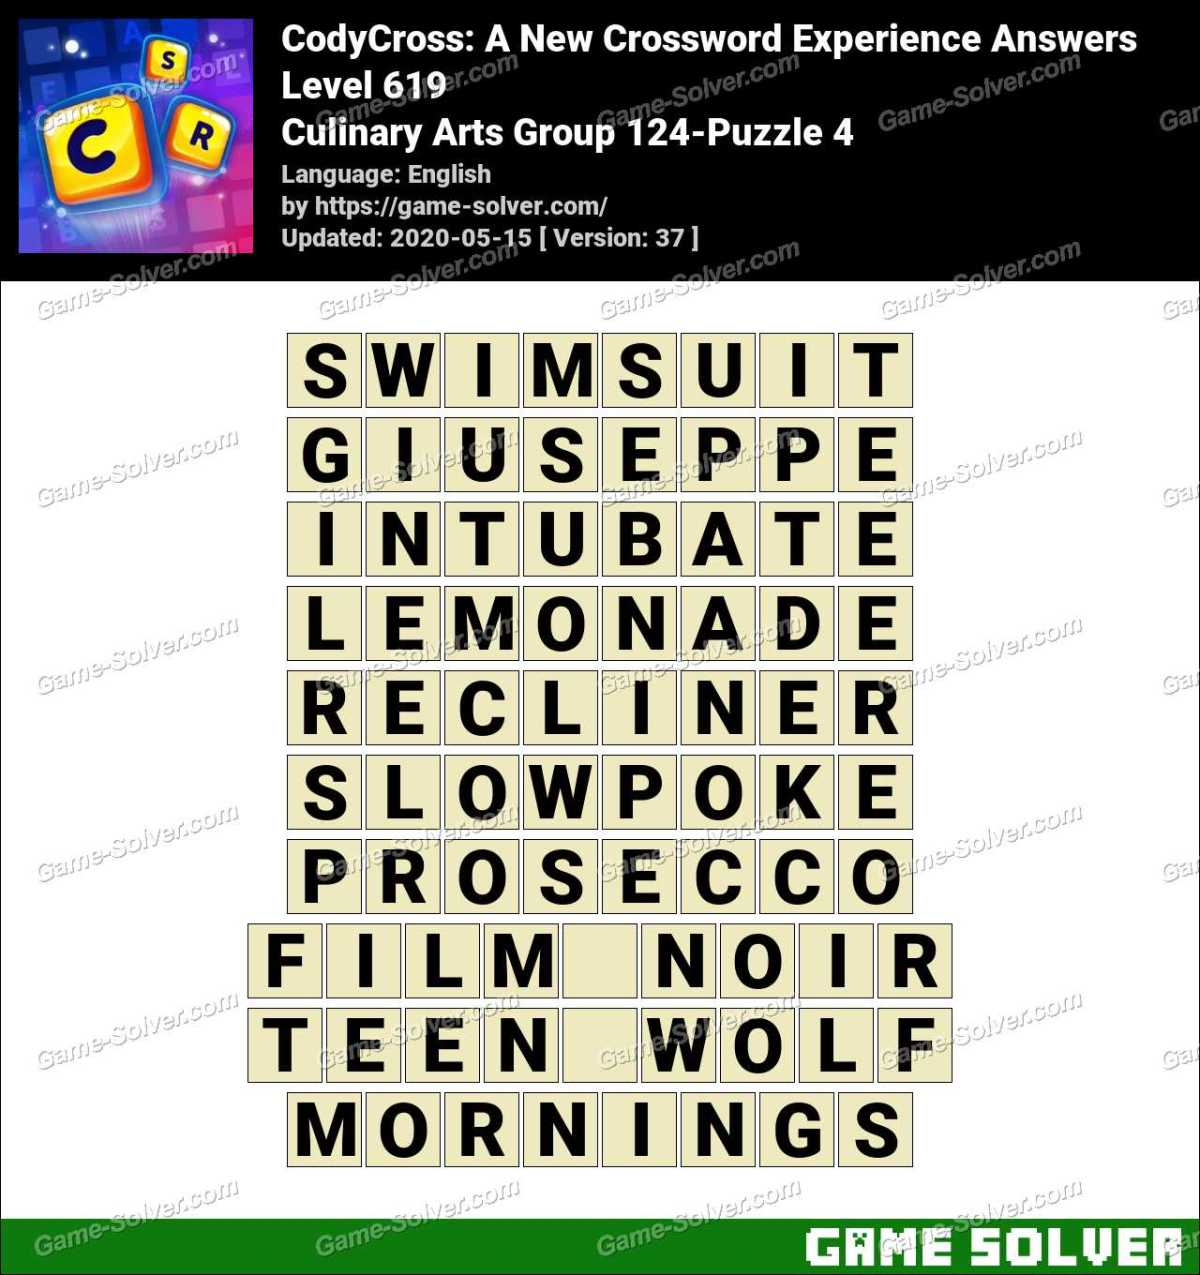 CodyCross Culinary Arts Group 124-Puzzle 4 Answers